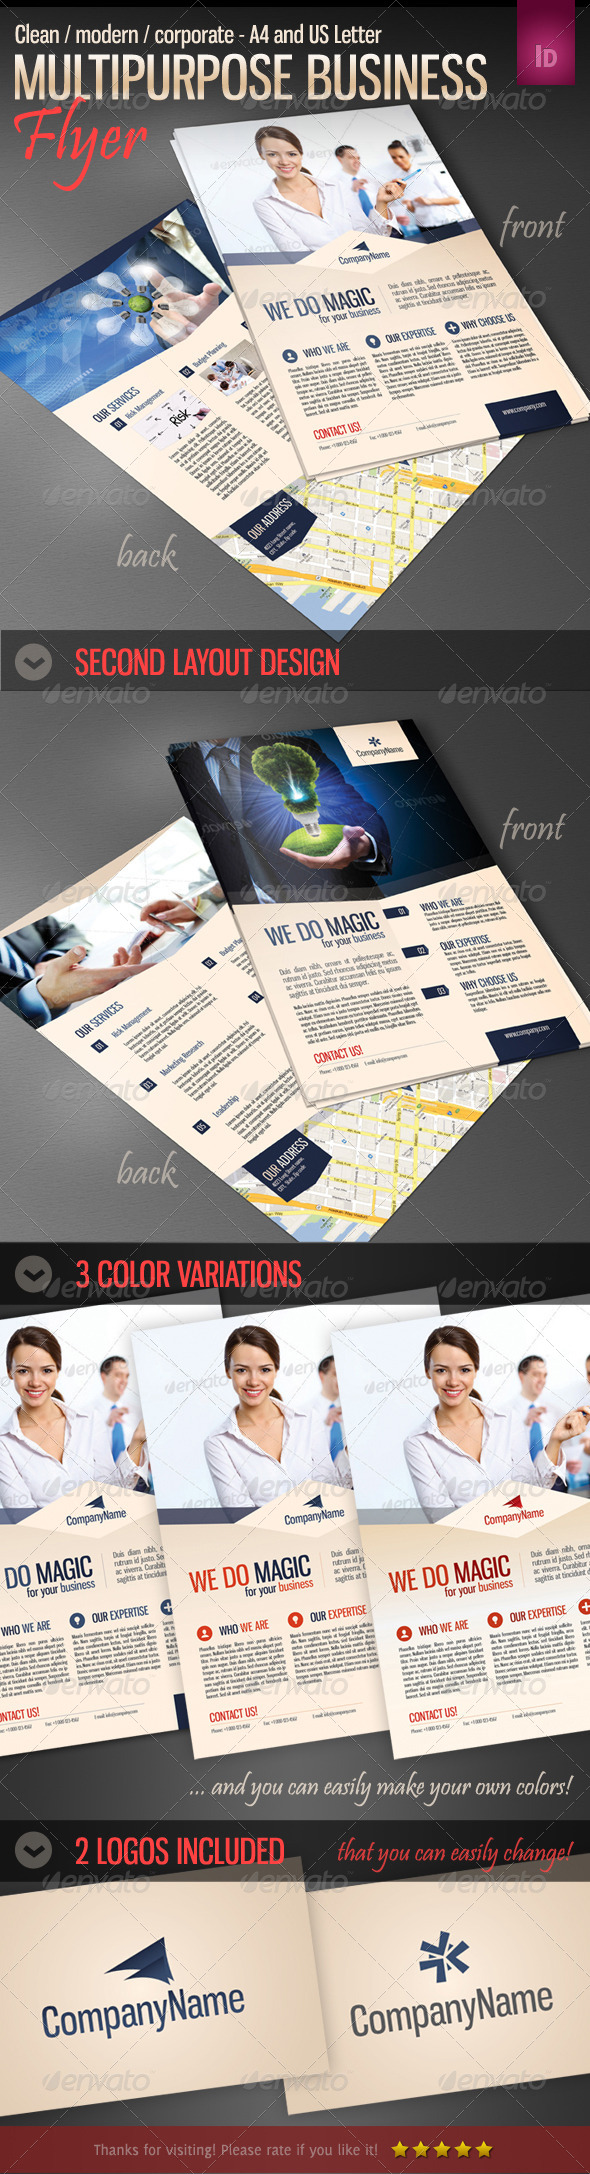 GraphicRiver Multipurpose Business Flyer Template 4377515